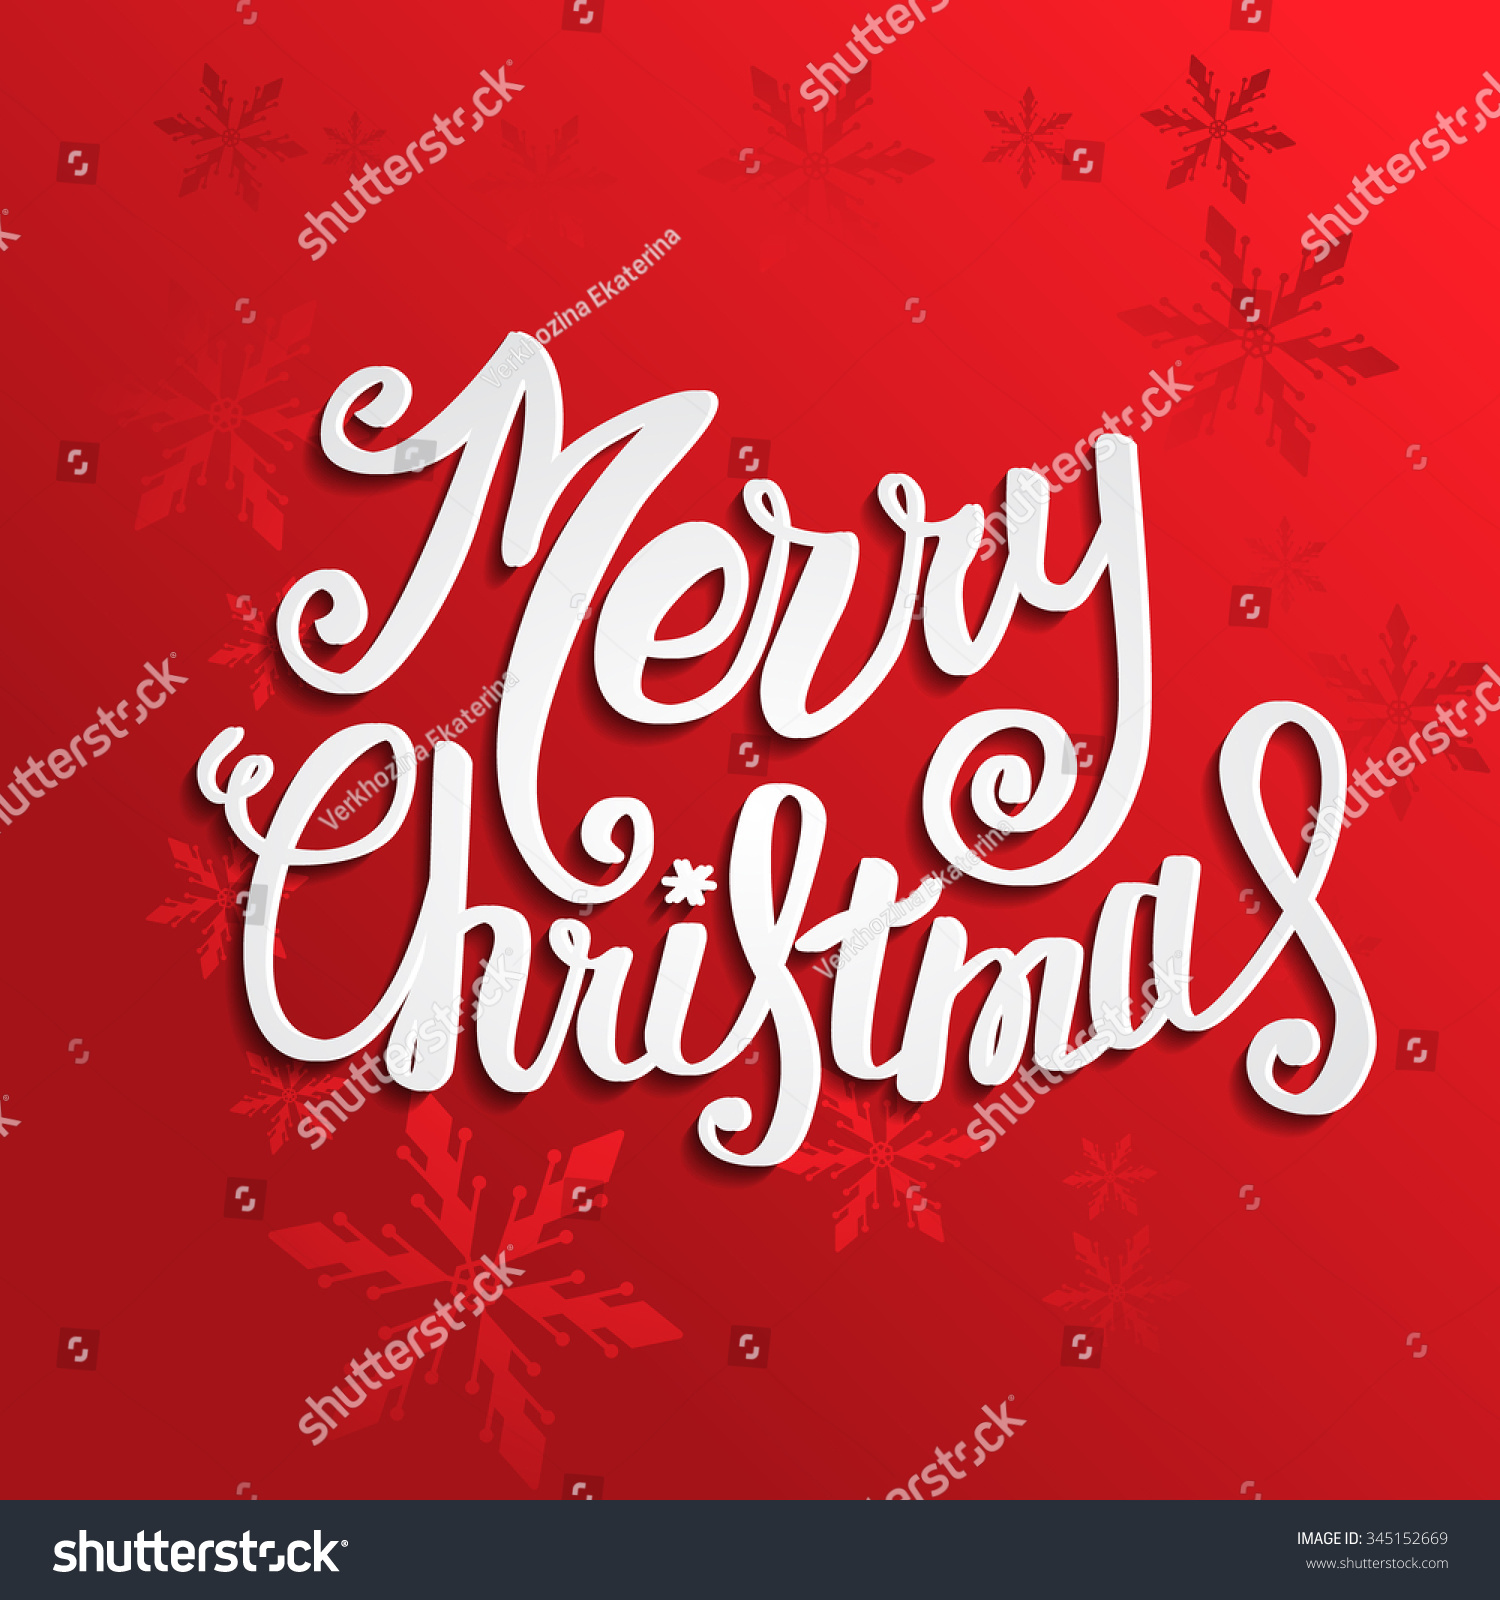 Vector Merry Christmas Card With Christmas Lettering